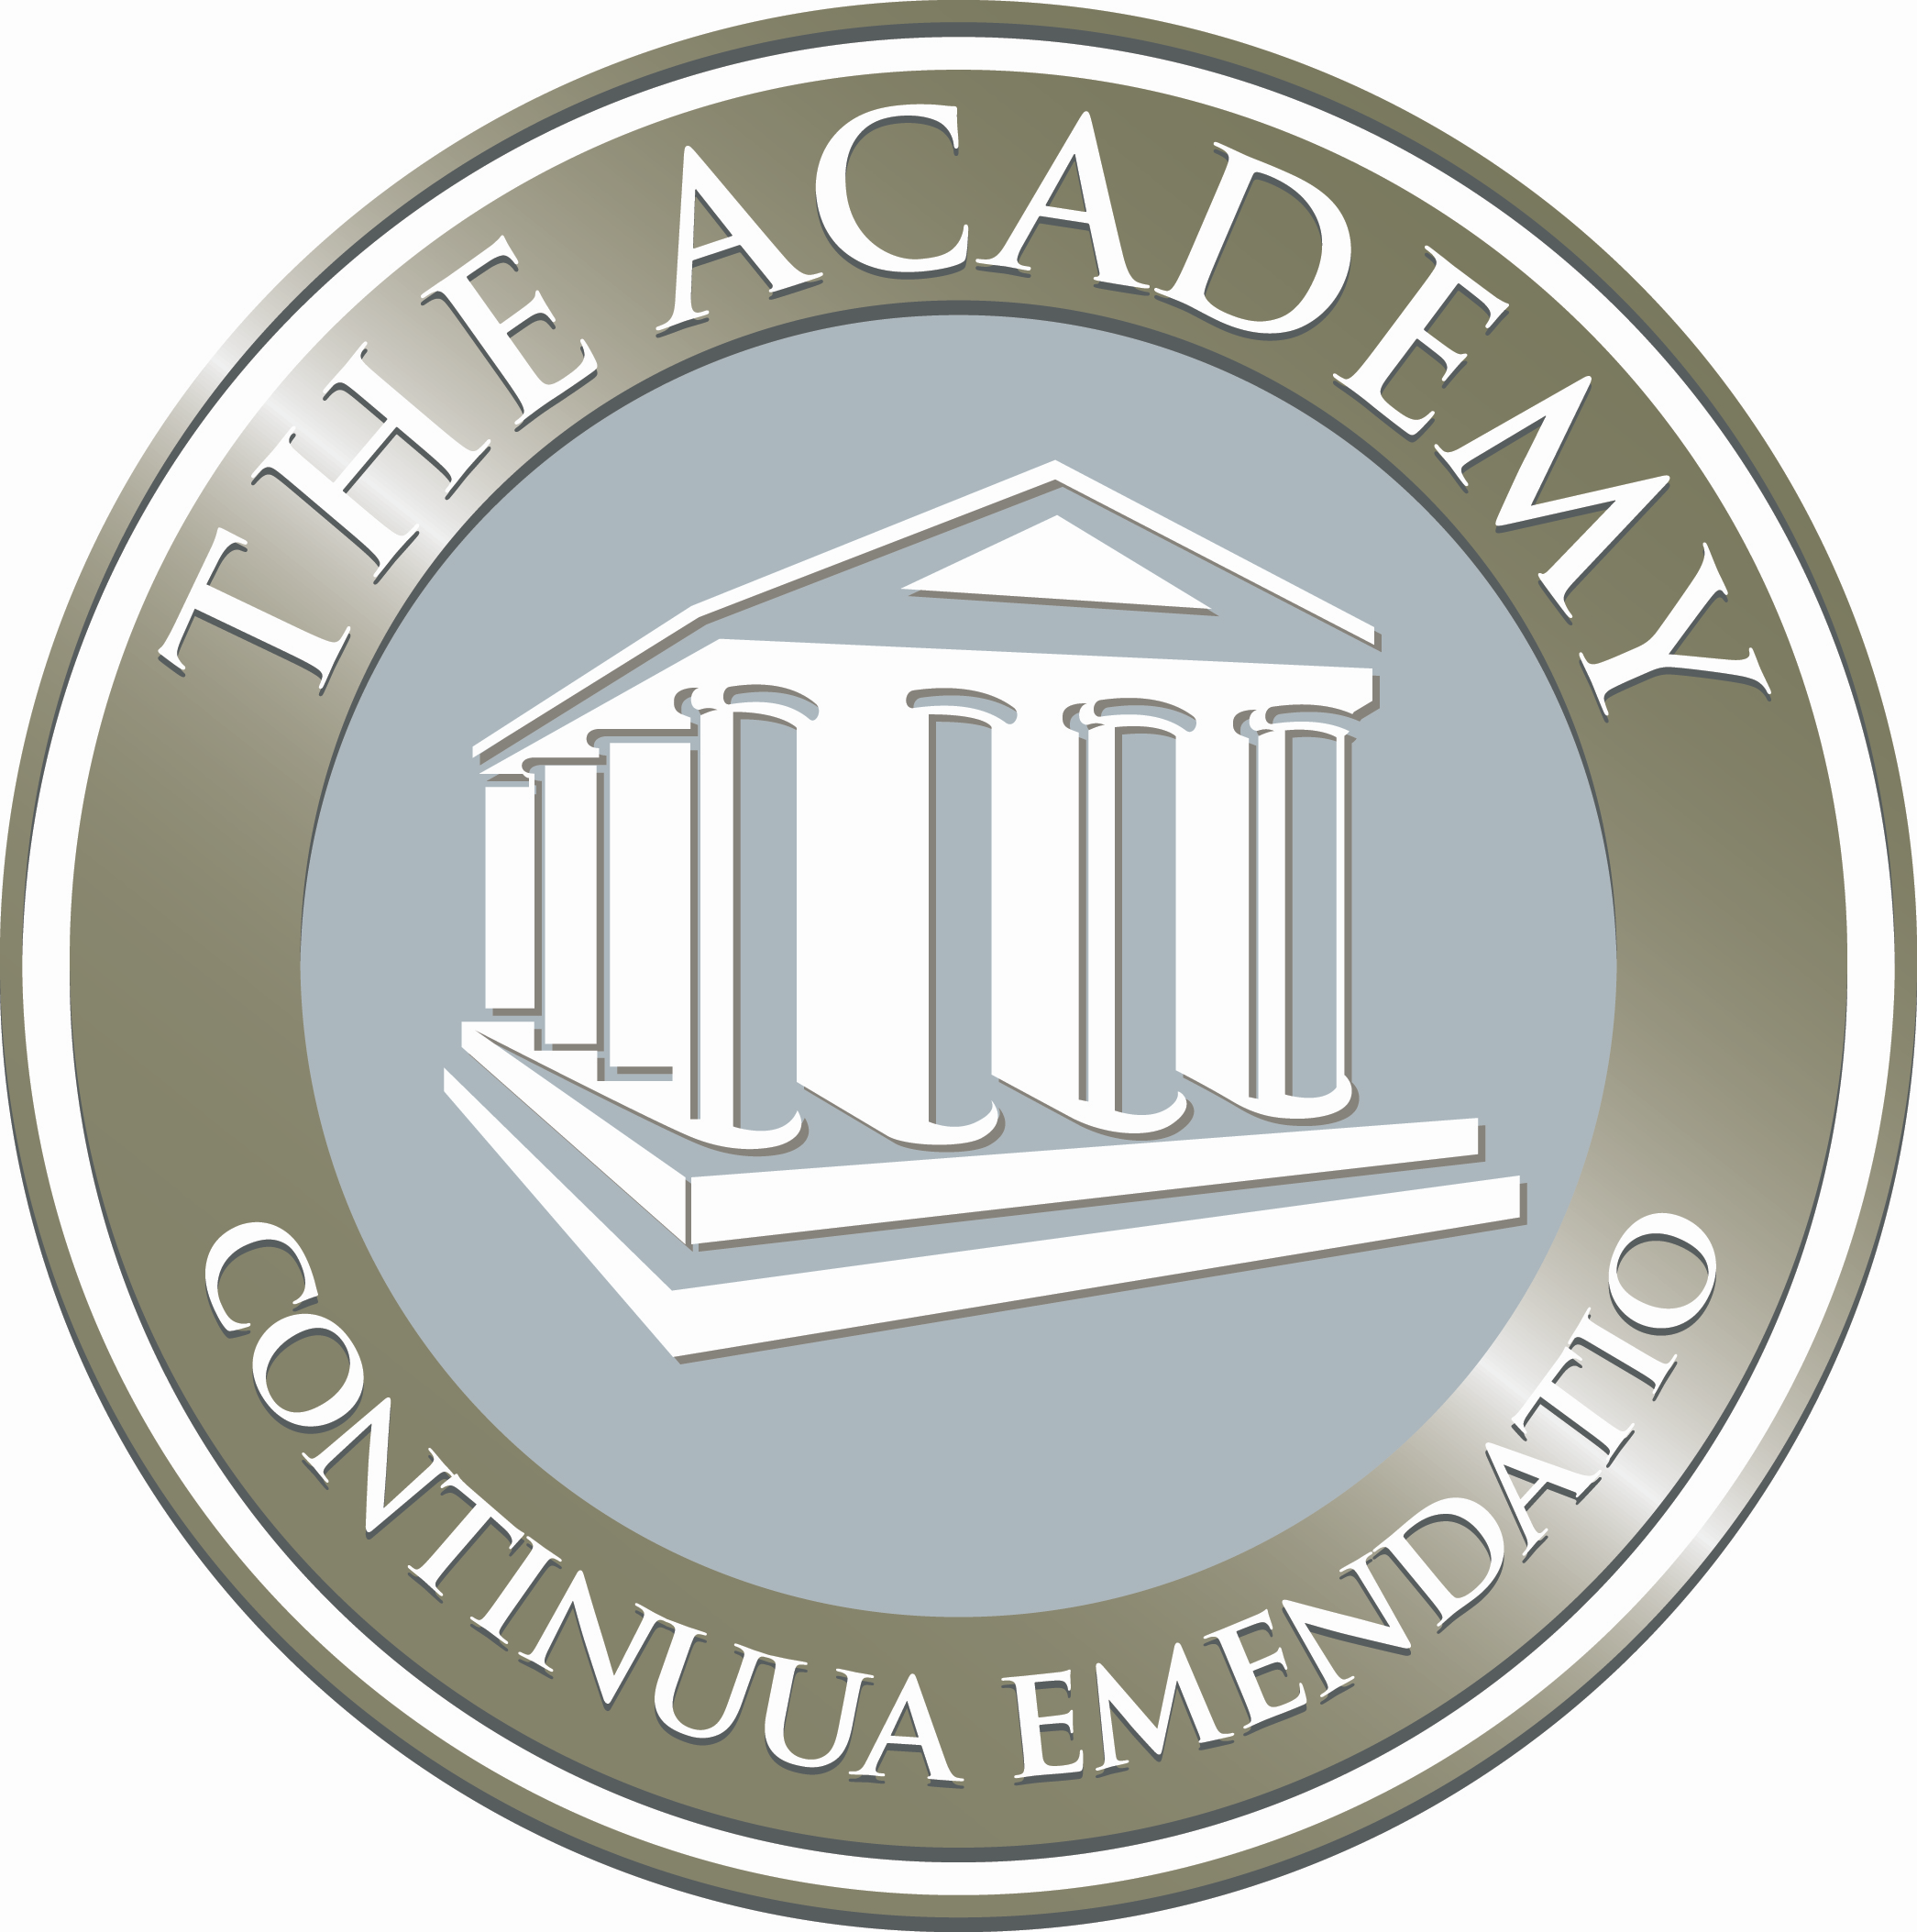 The Academy of South Florida